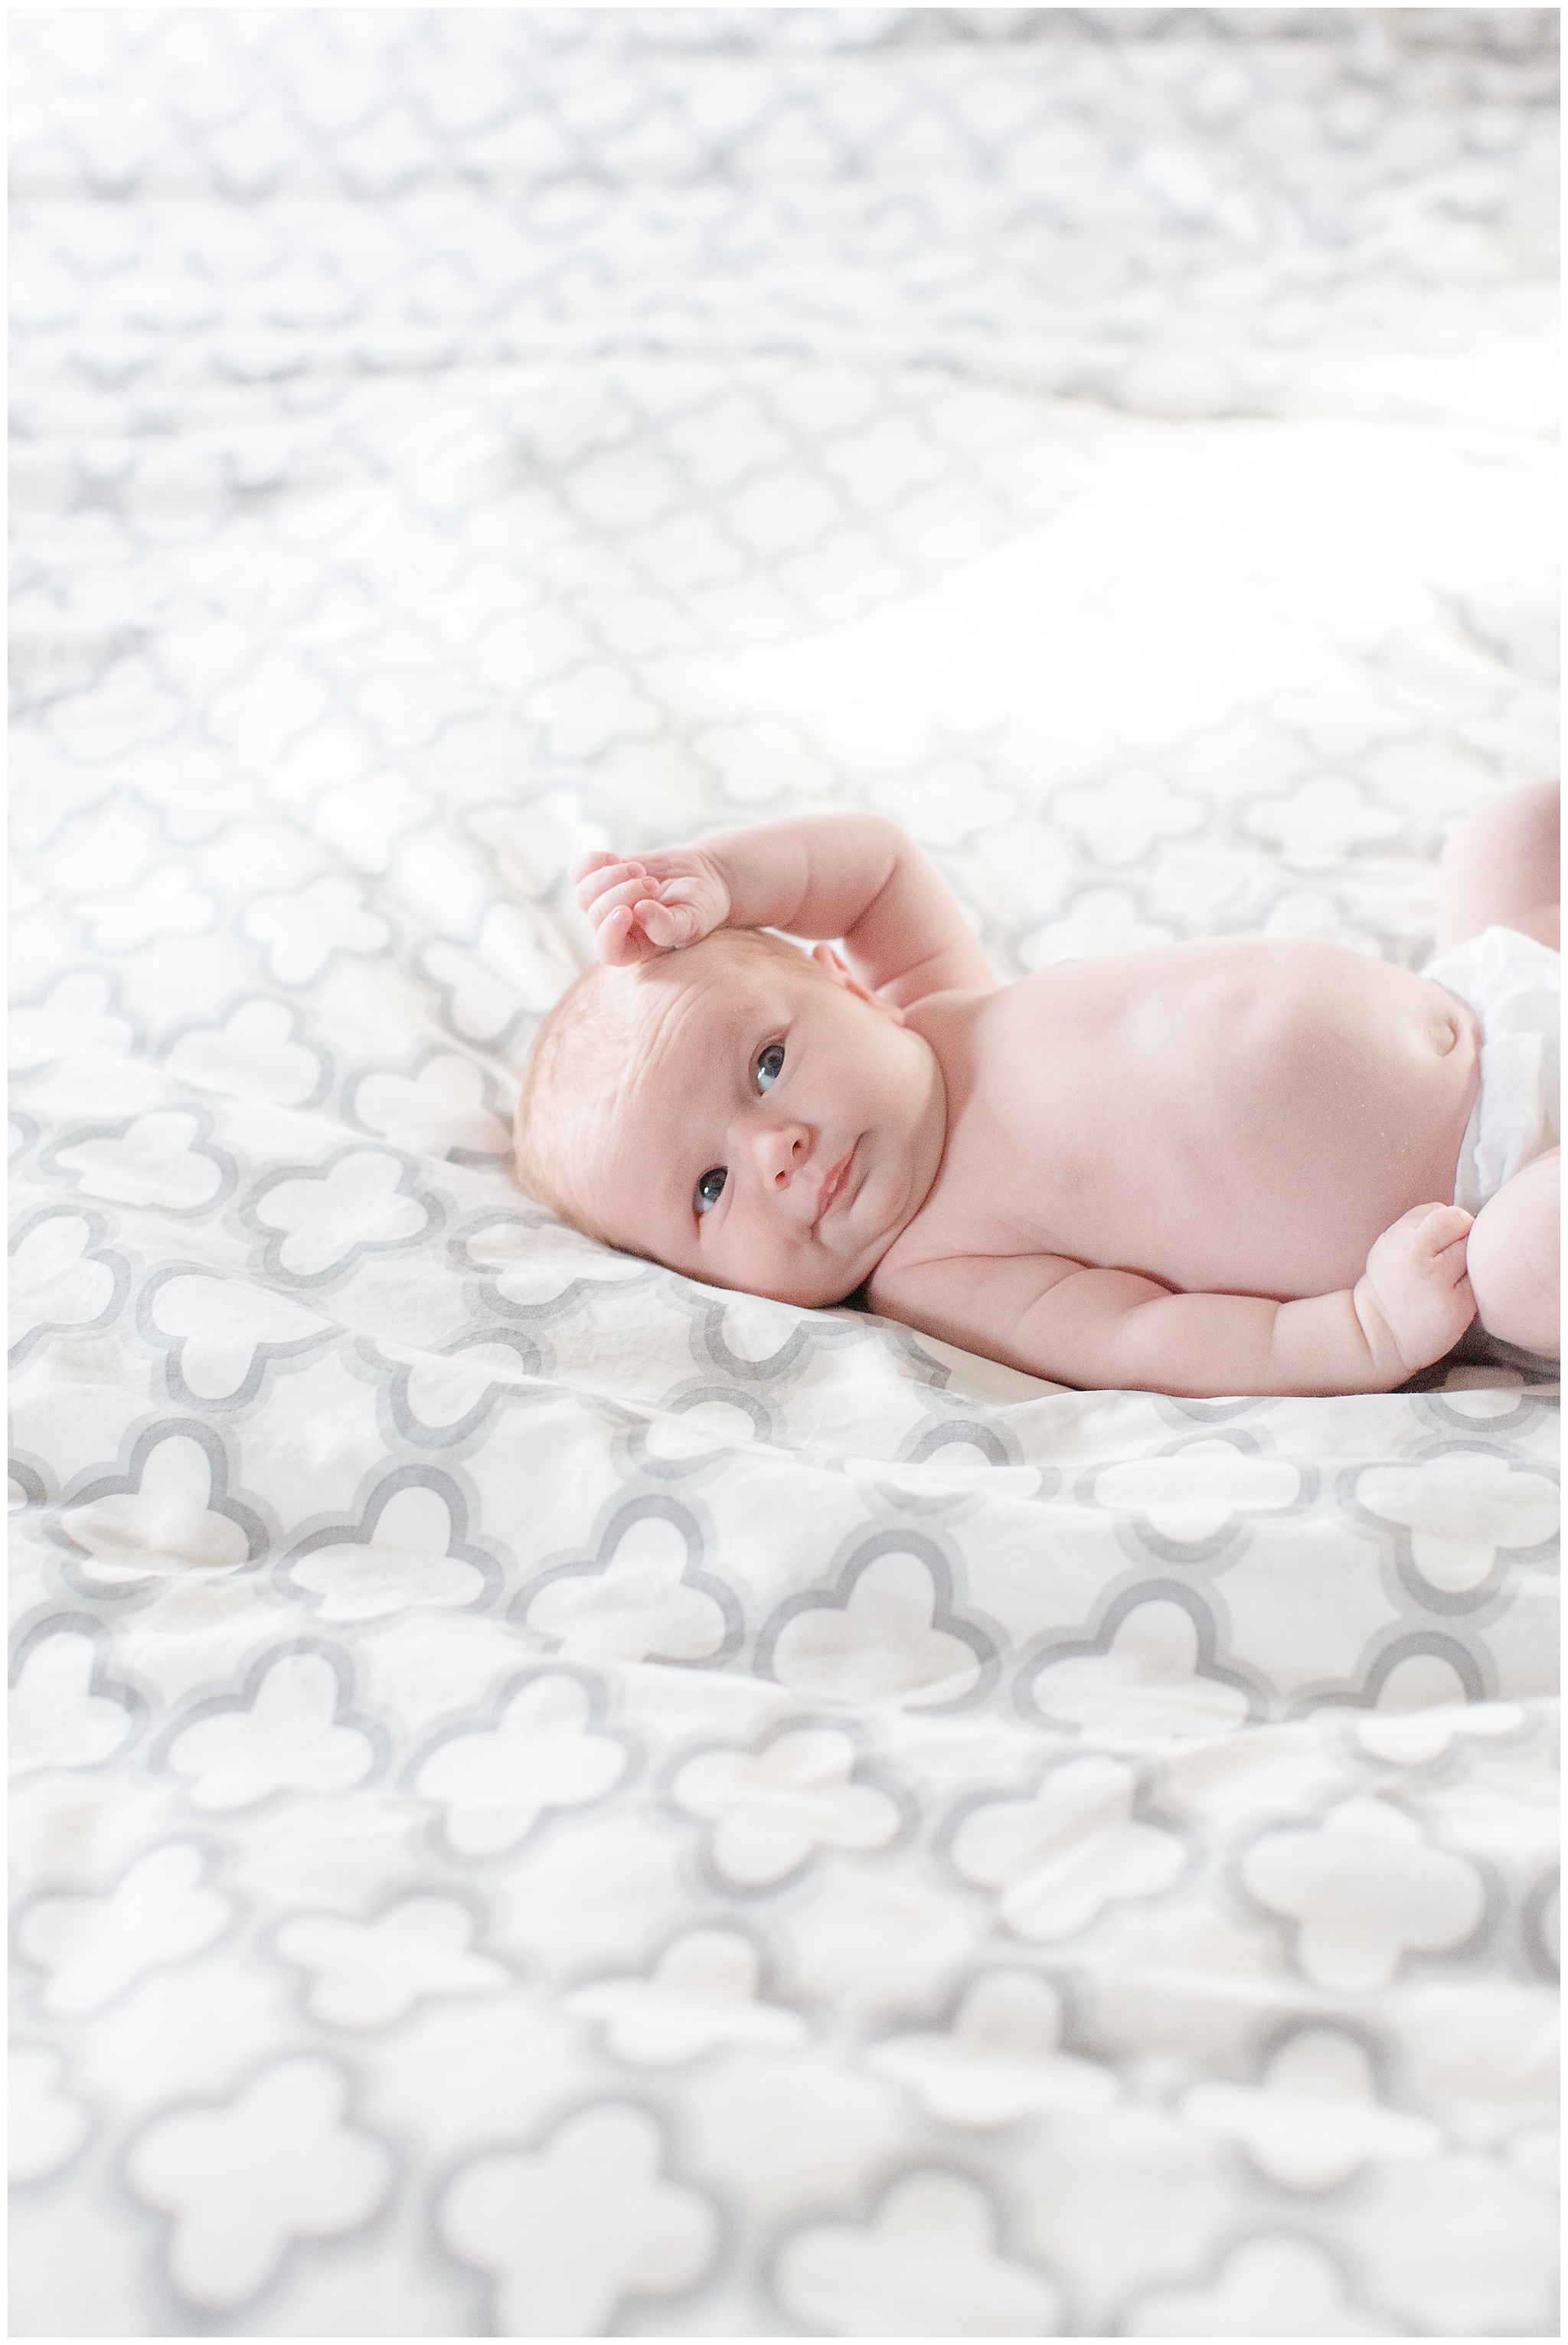 Obrock-newborn-session_0015.jpg